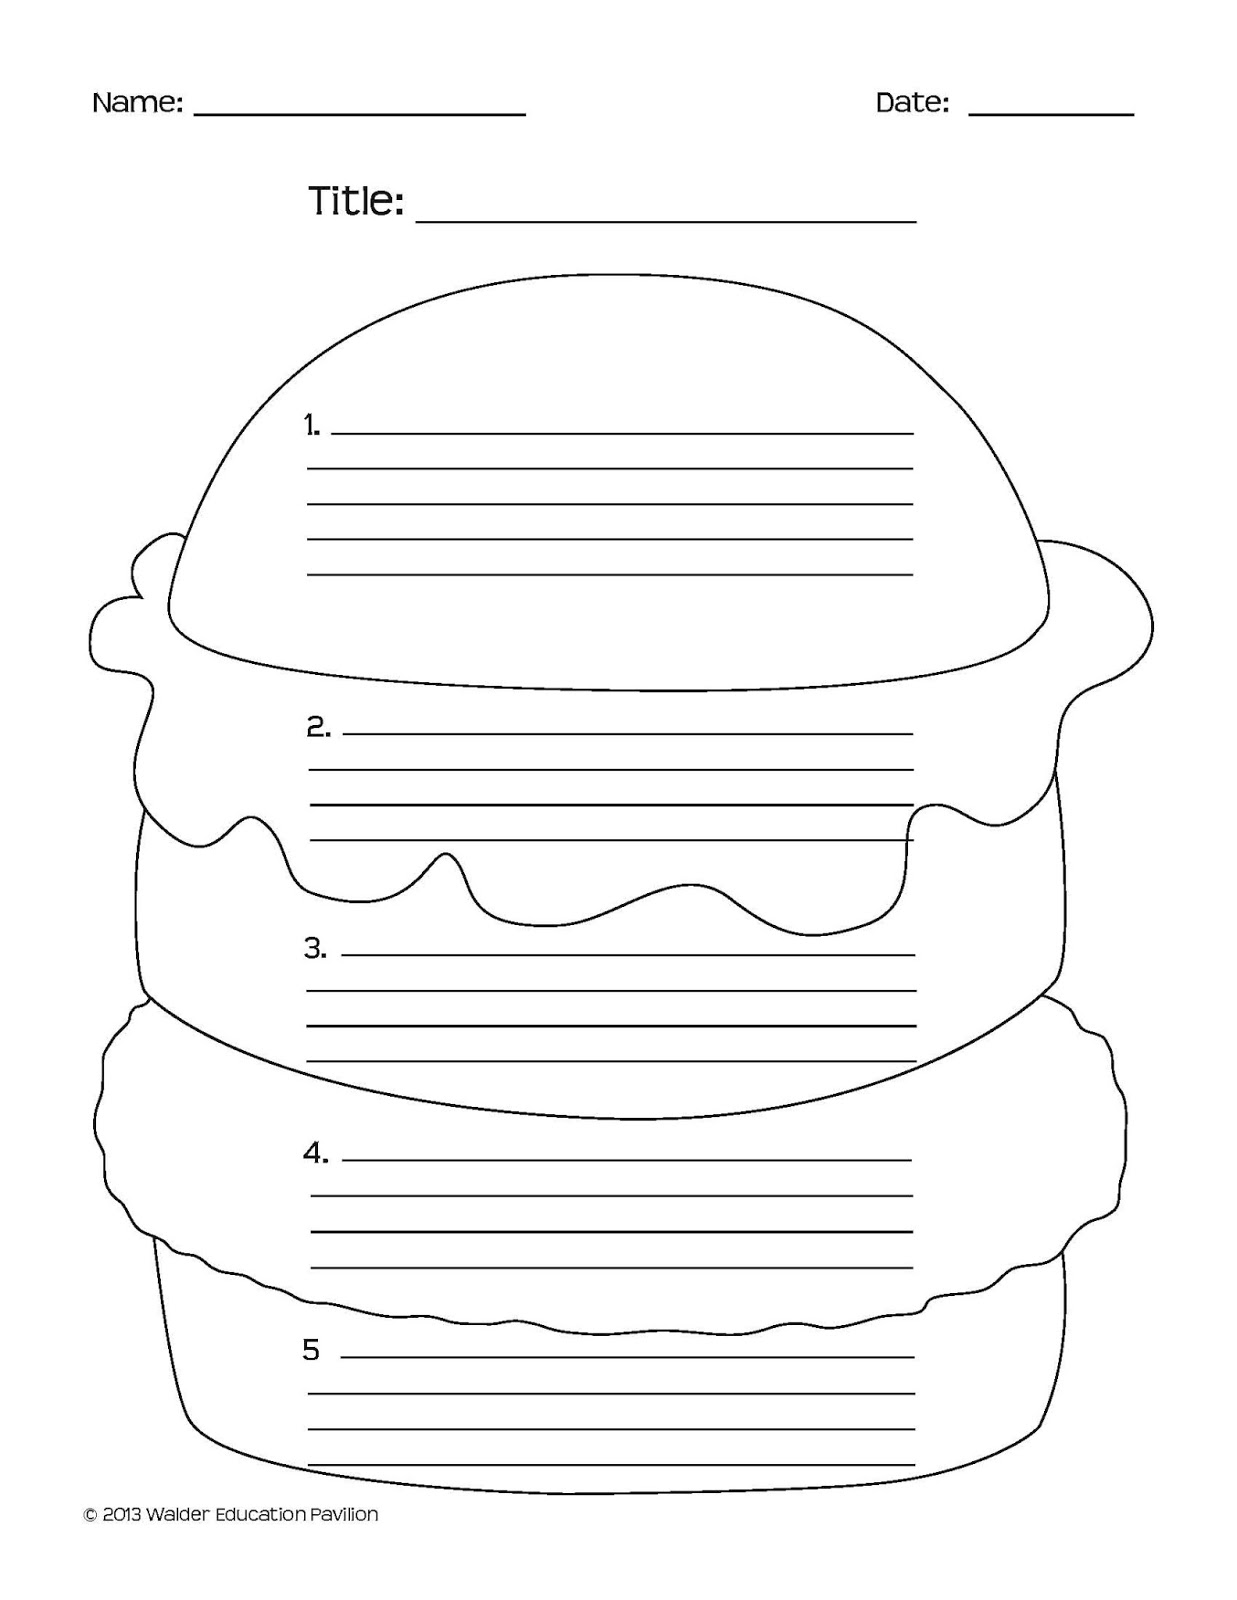 Worksheets Hamburger Paragraph Worksheet hamburger essay walder education pavilion of torah umesorah worksheet